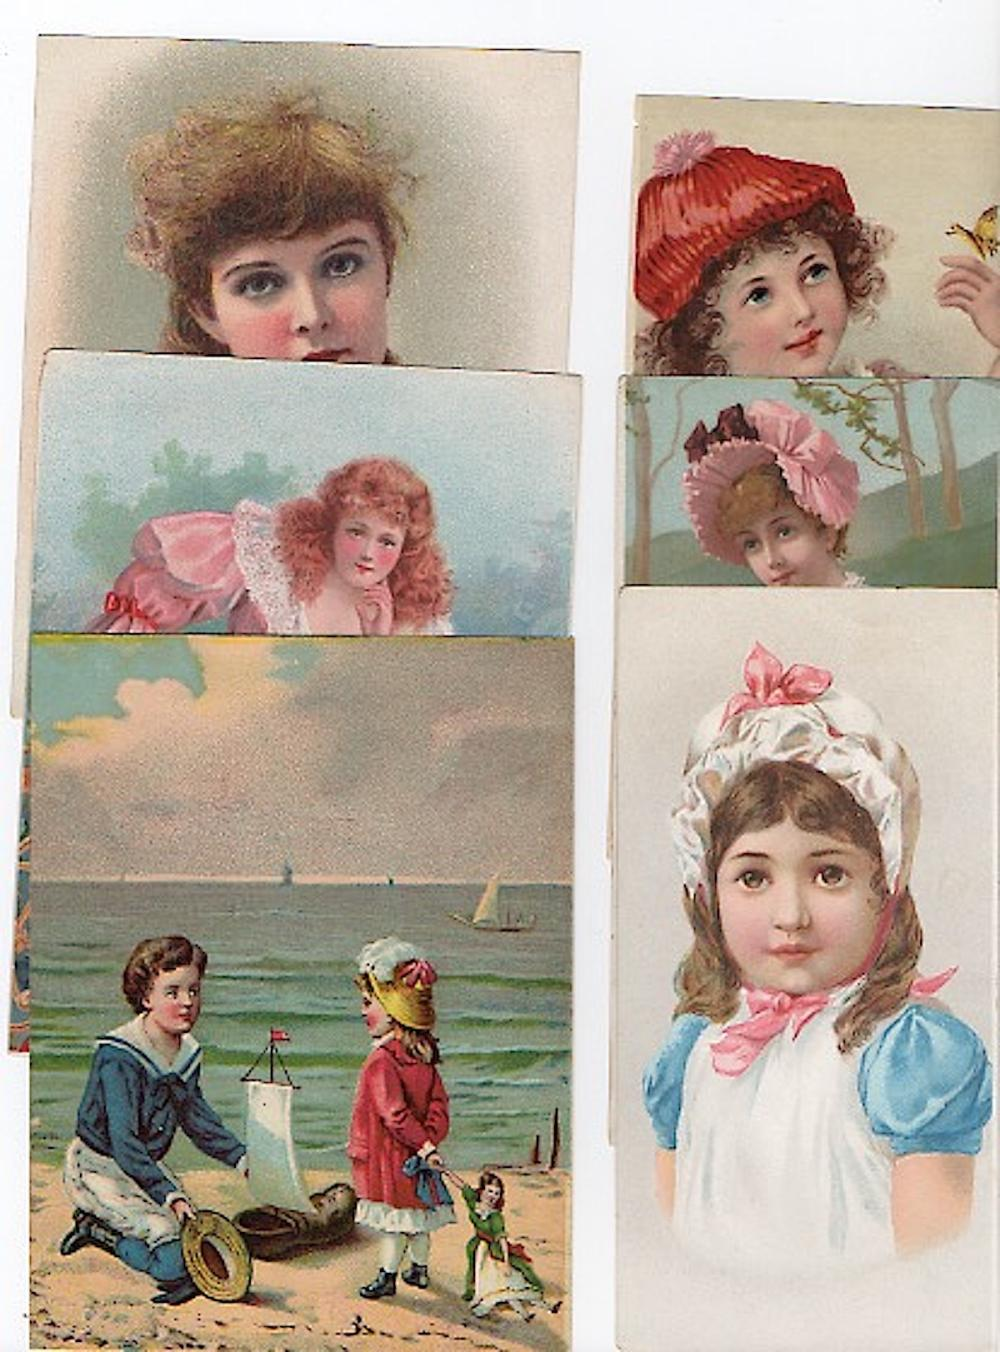 Collection of 10 Chromo Lithos from the 19th century